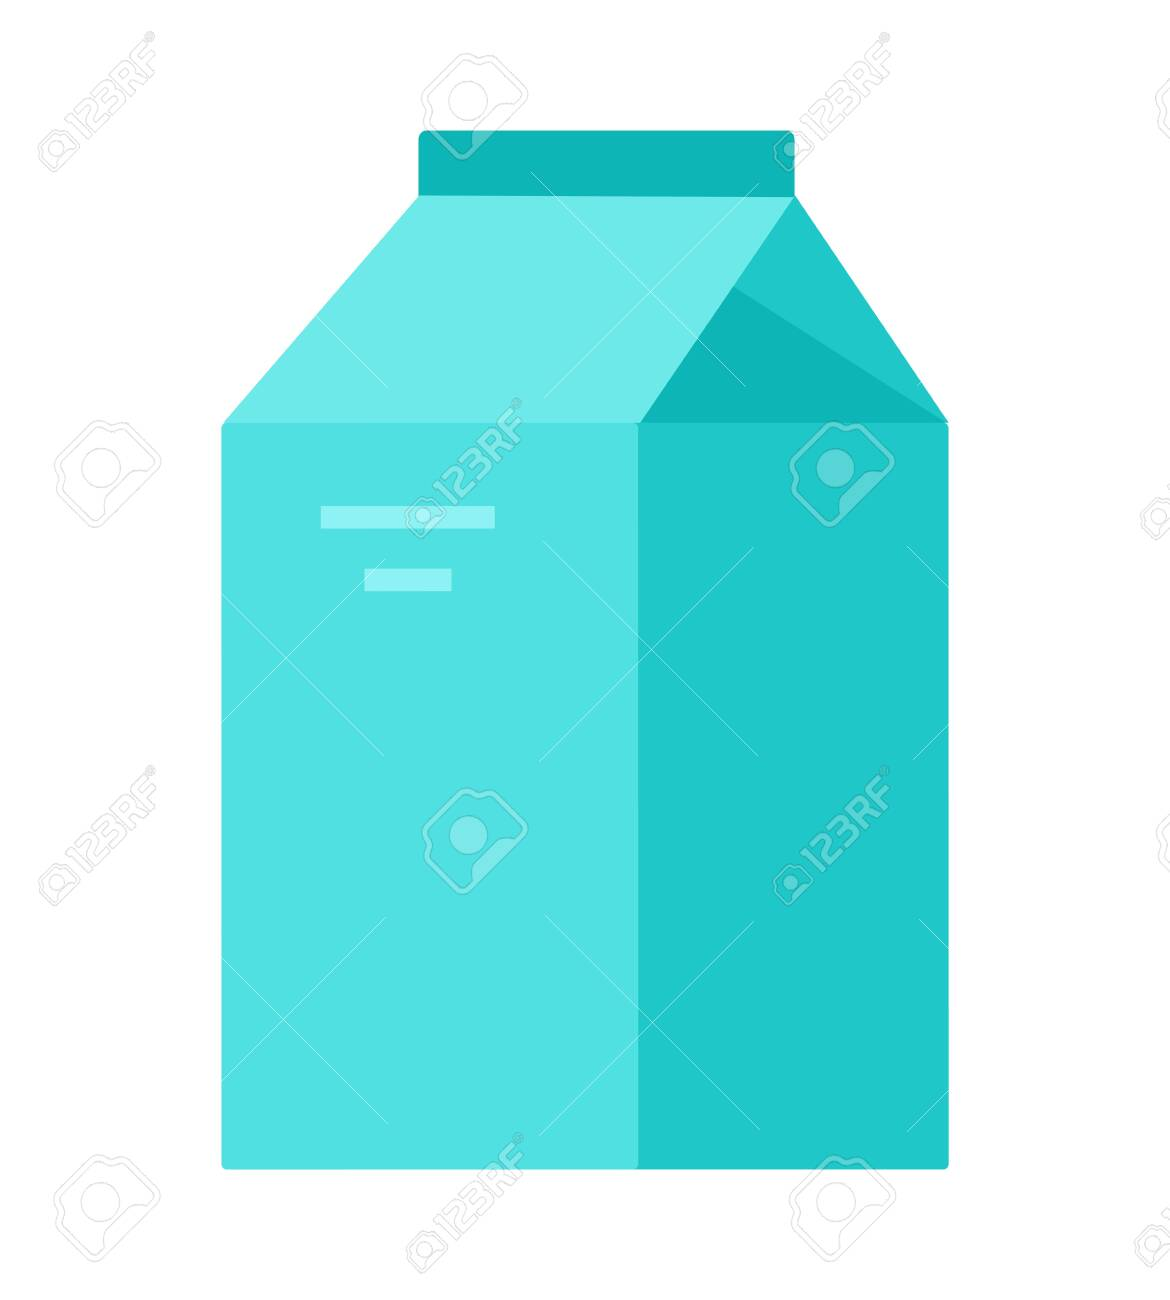 Vegetable milk in paper packaging vector flat material design isolated on white - 137003565